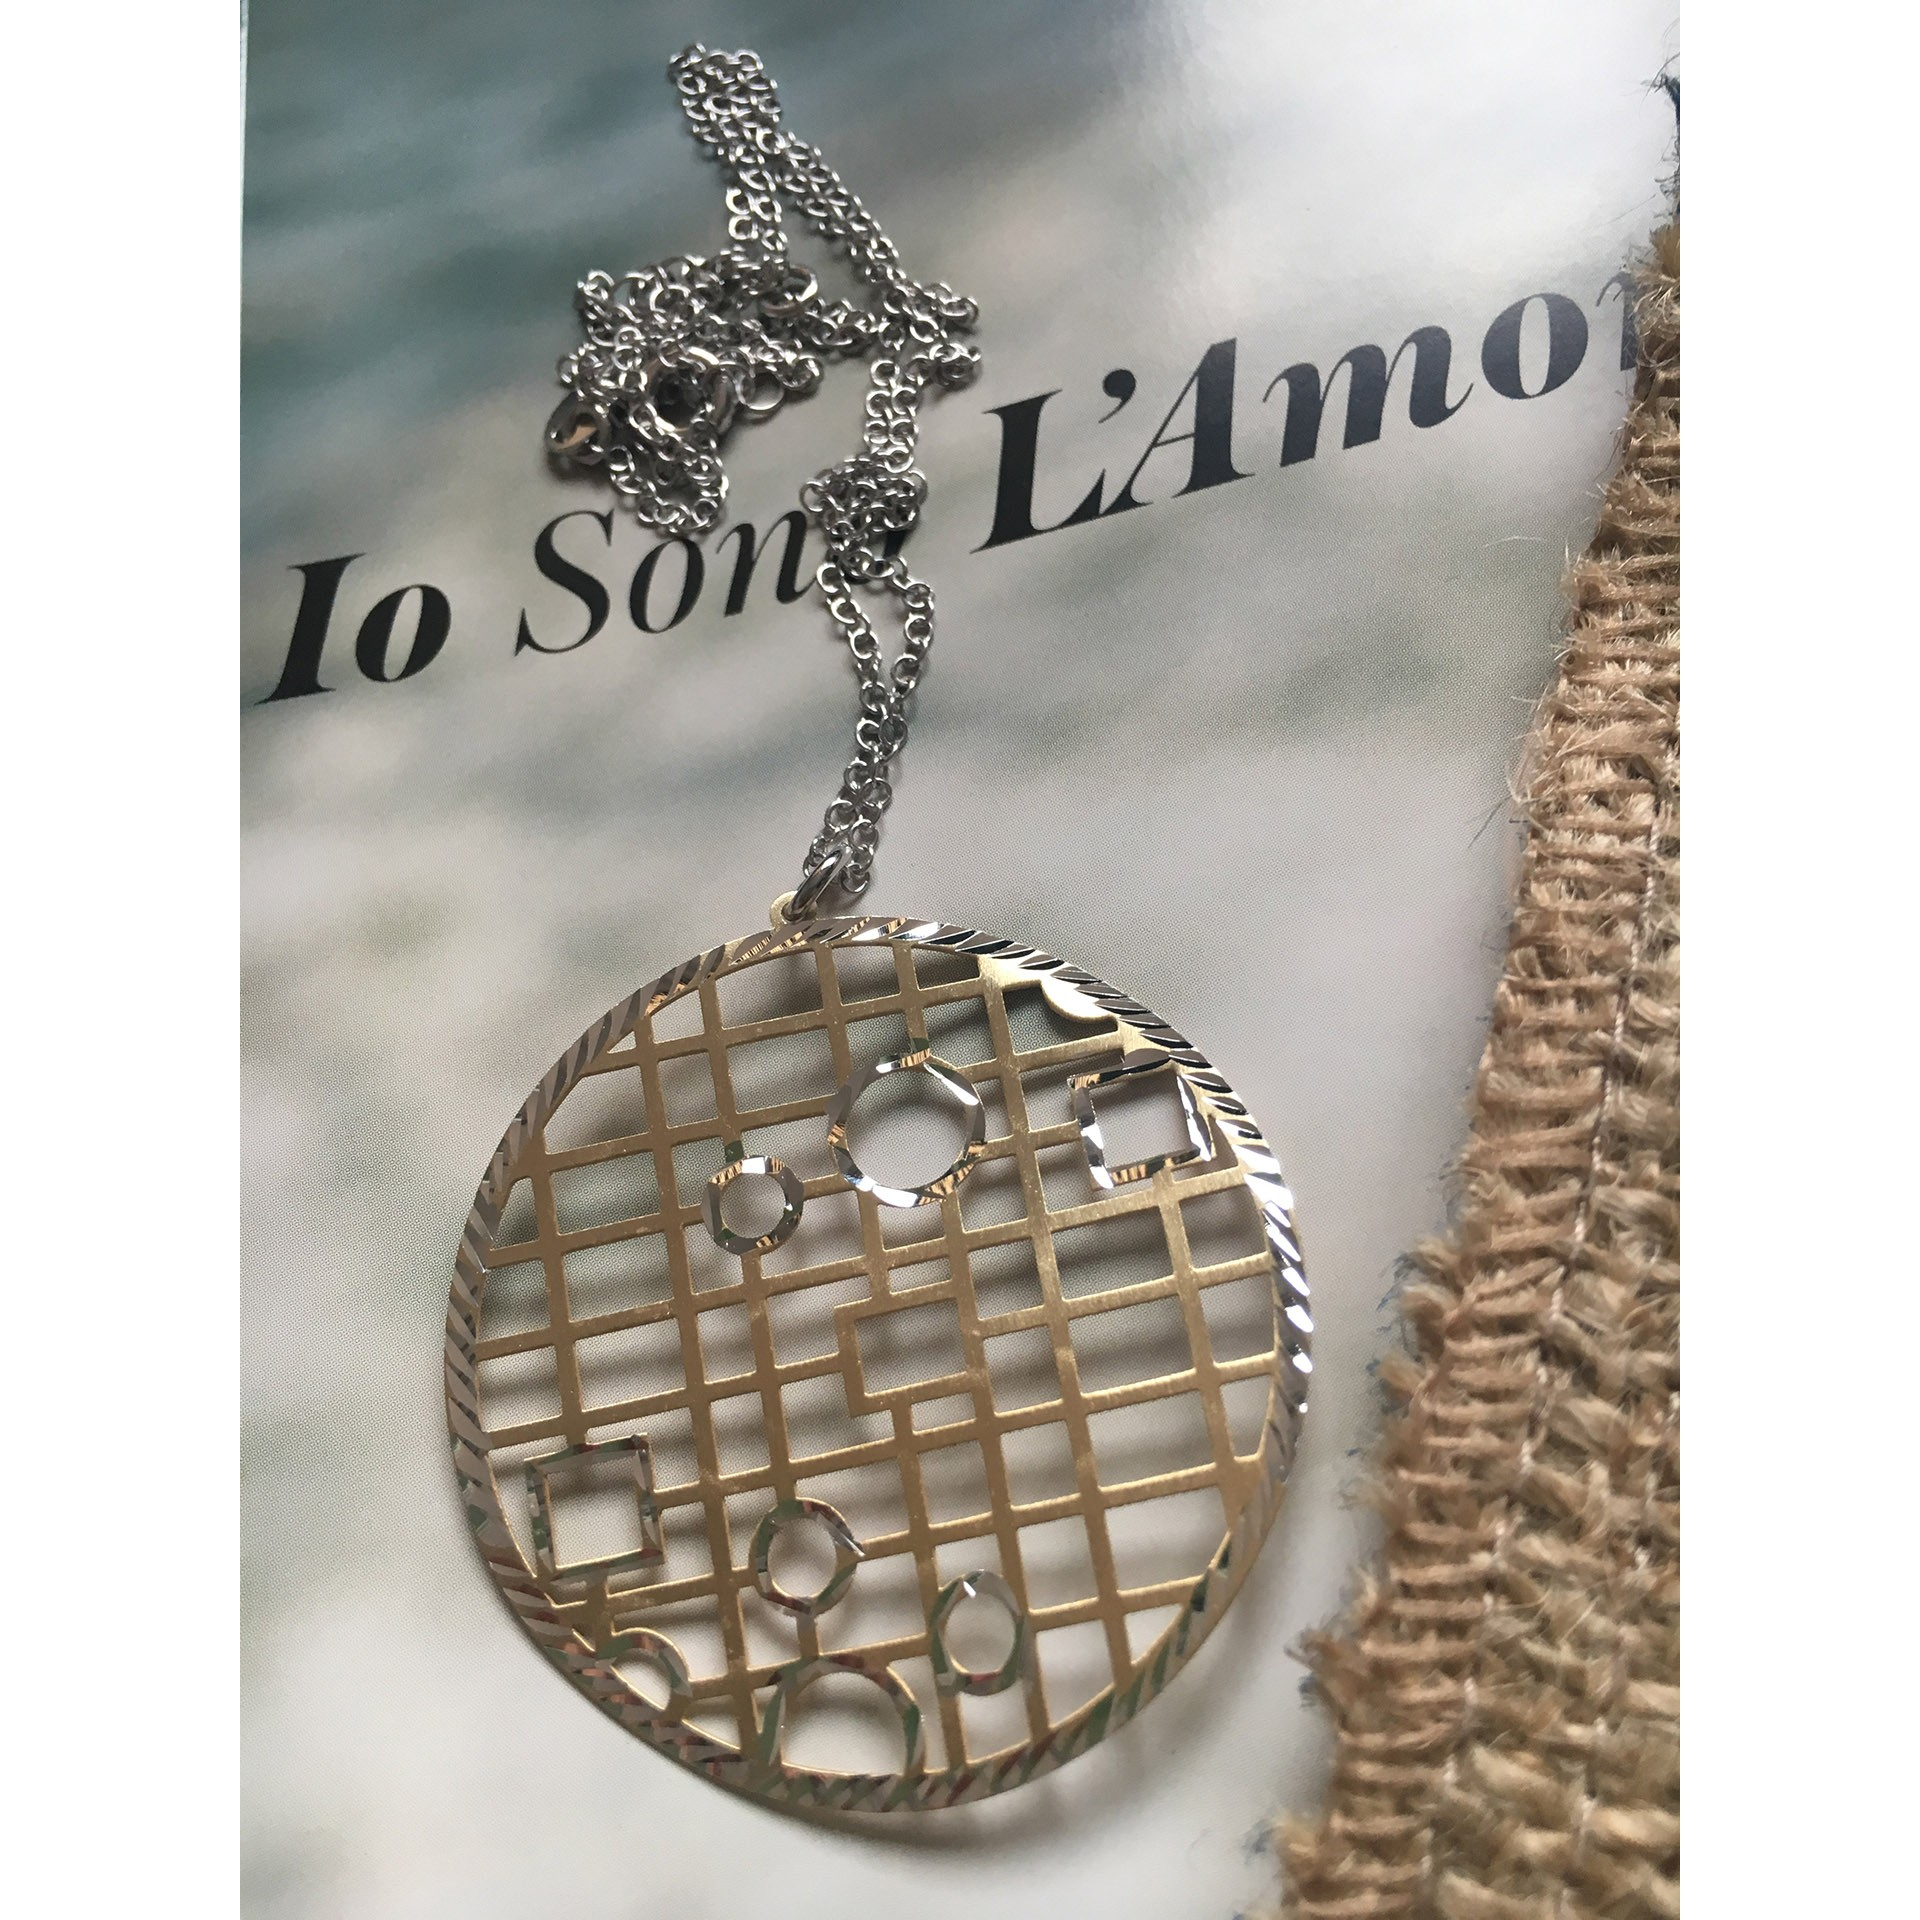 The Lattice in Gold silver necklace